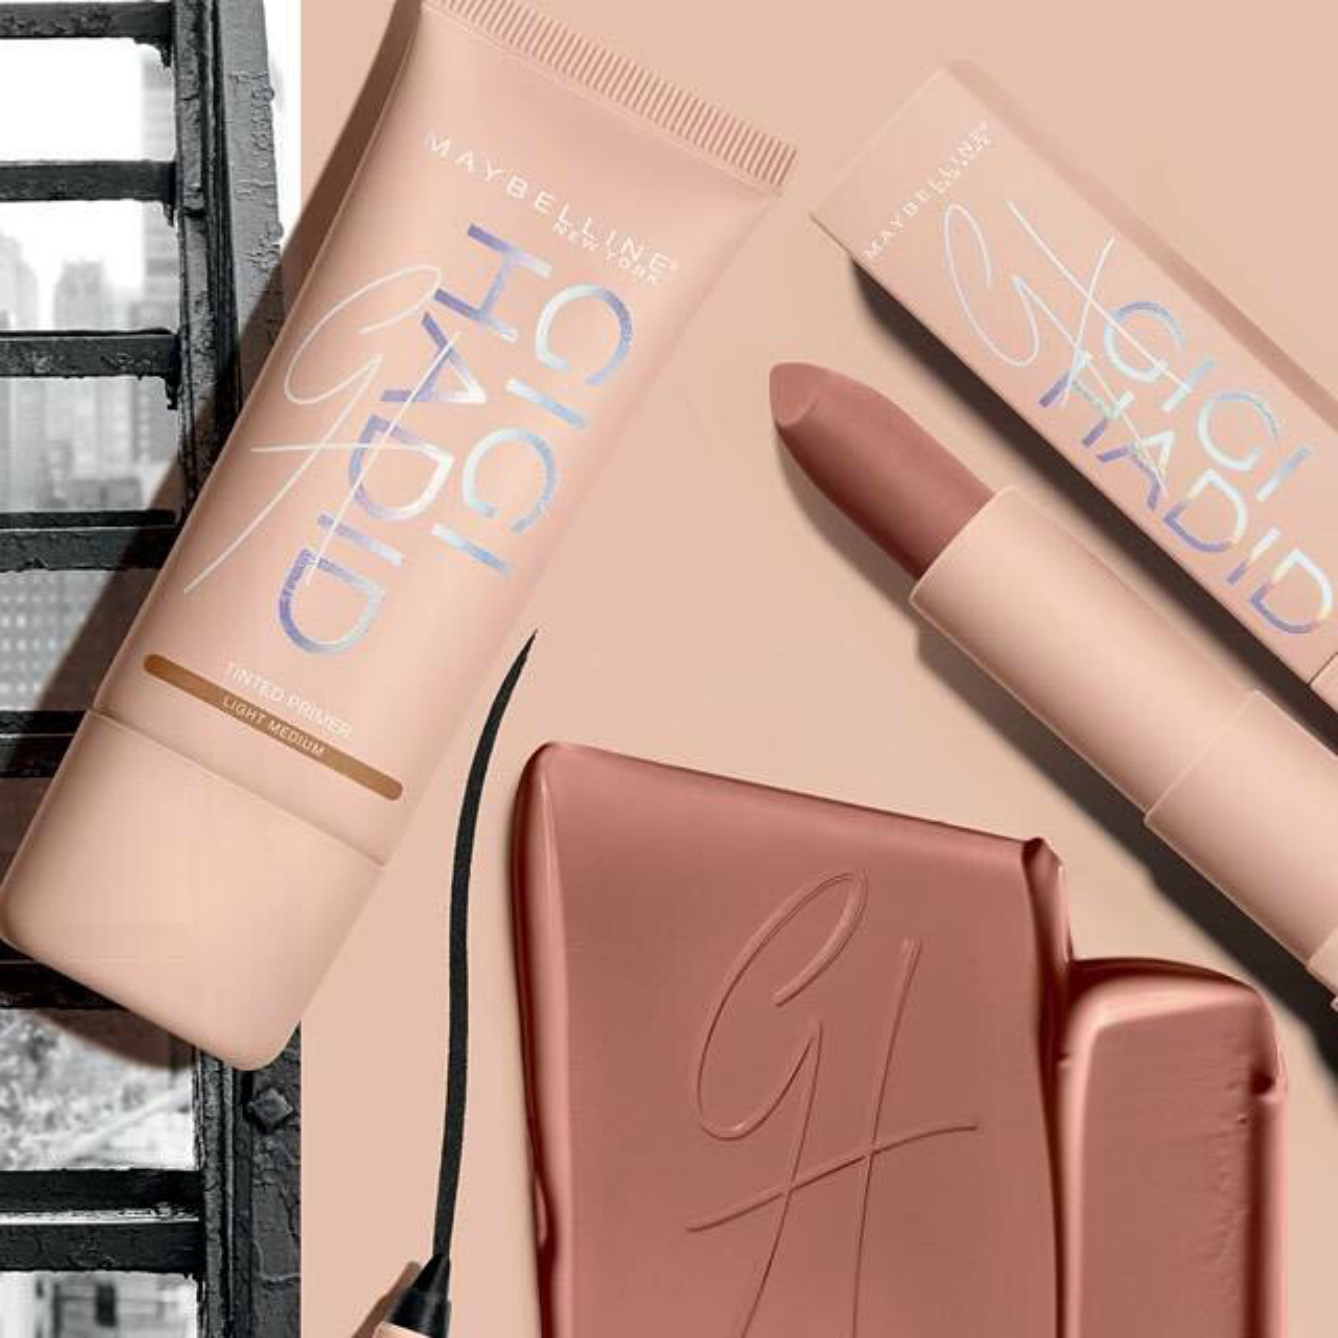 There's More to the Gigi x Maybelline Collab